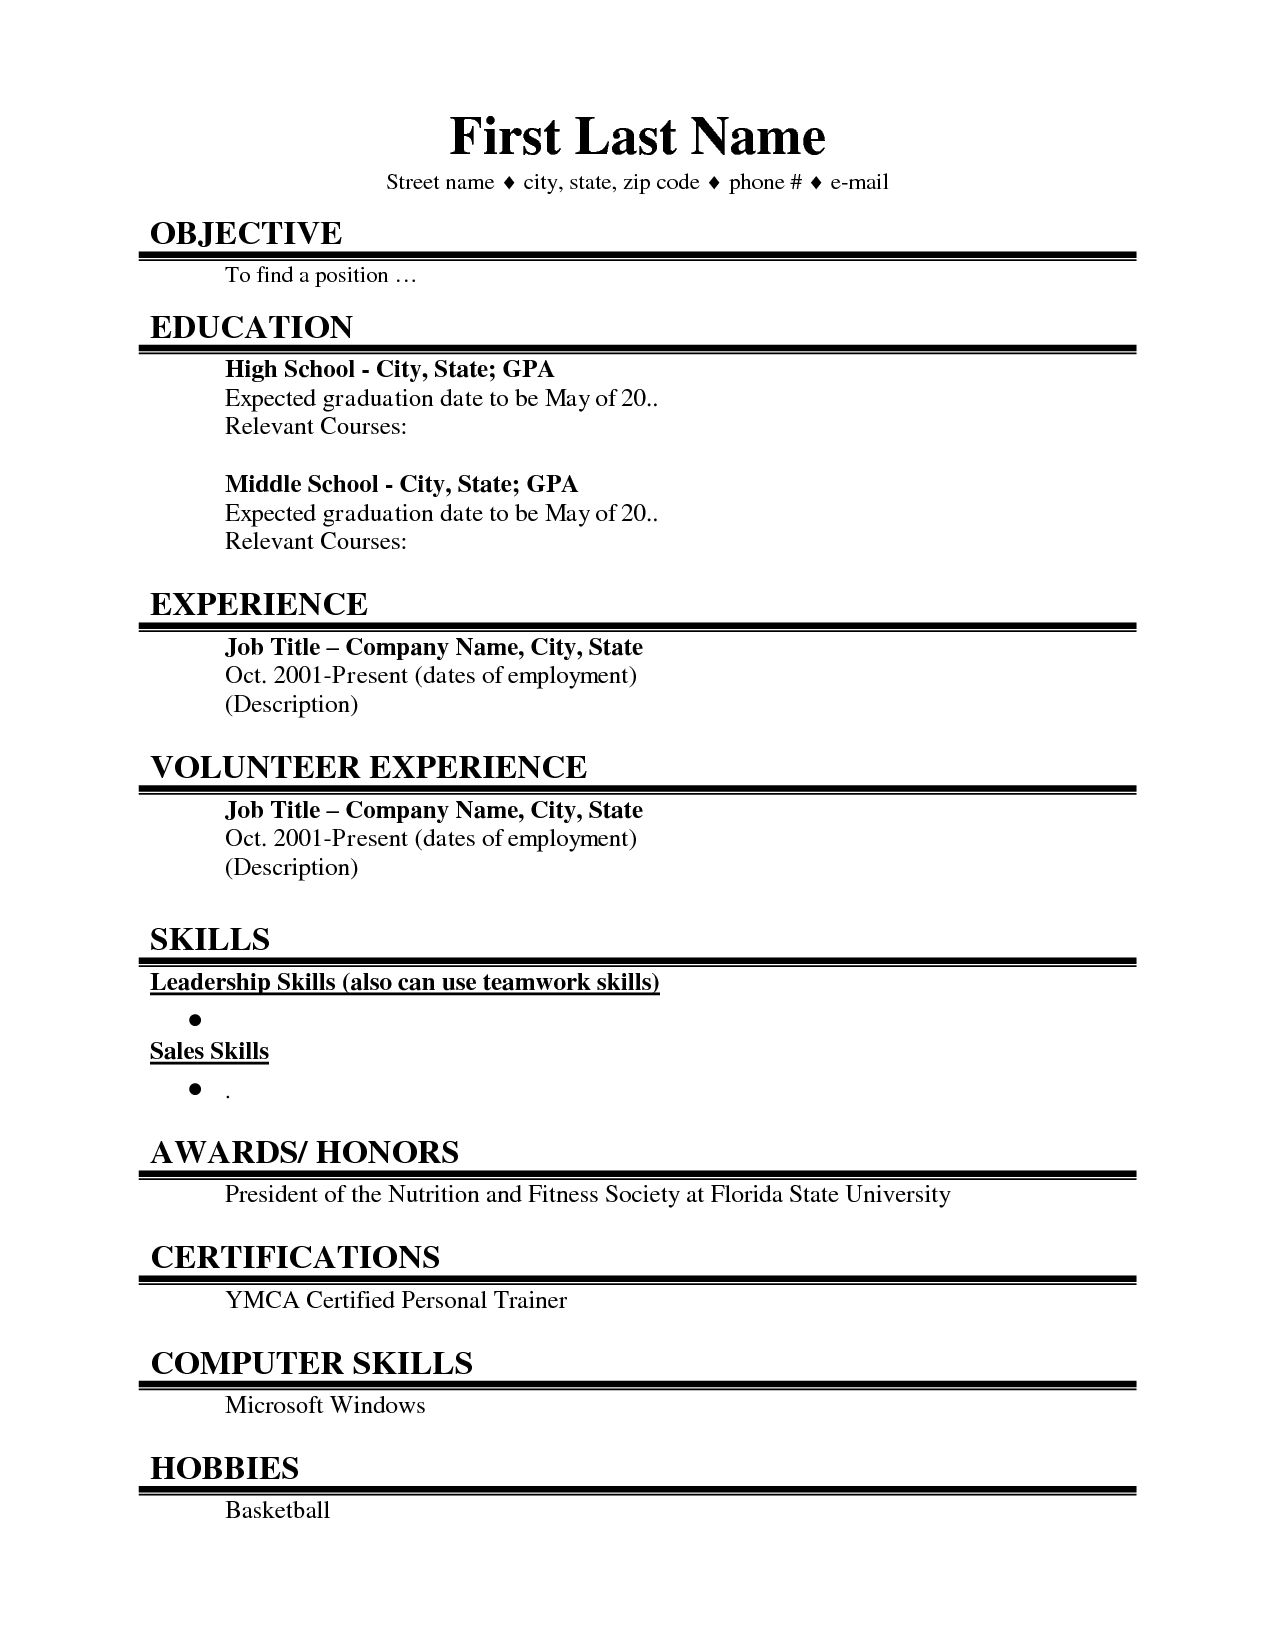 Resume Builder Uga Resume Sample For High School Students With No Experience  Http